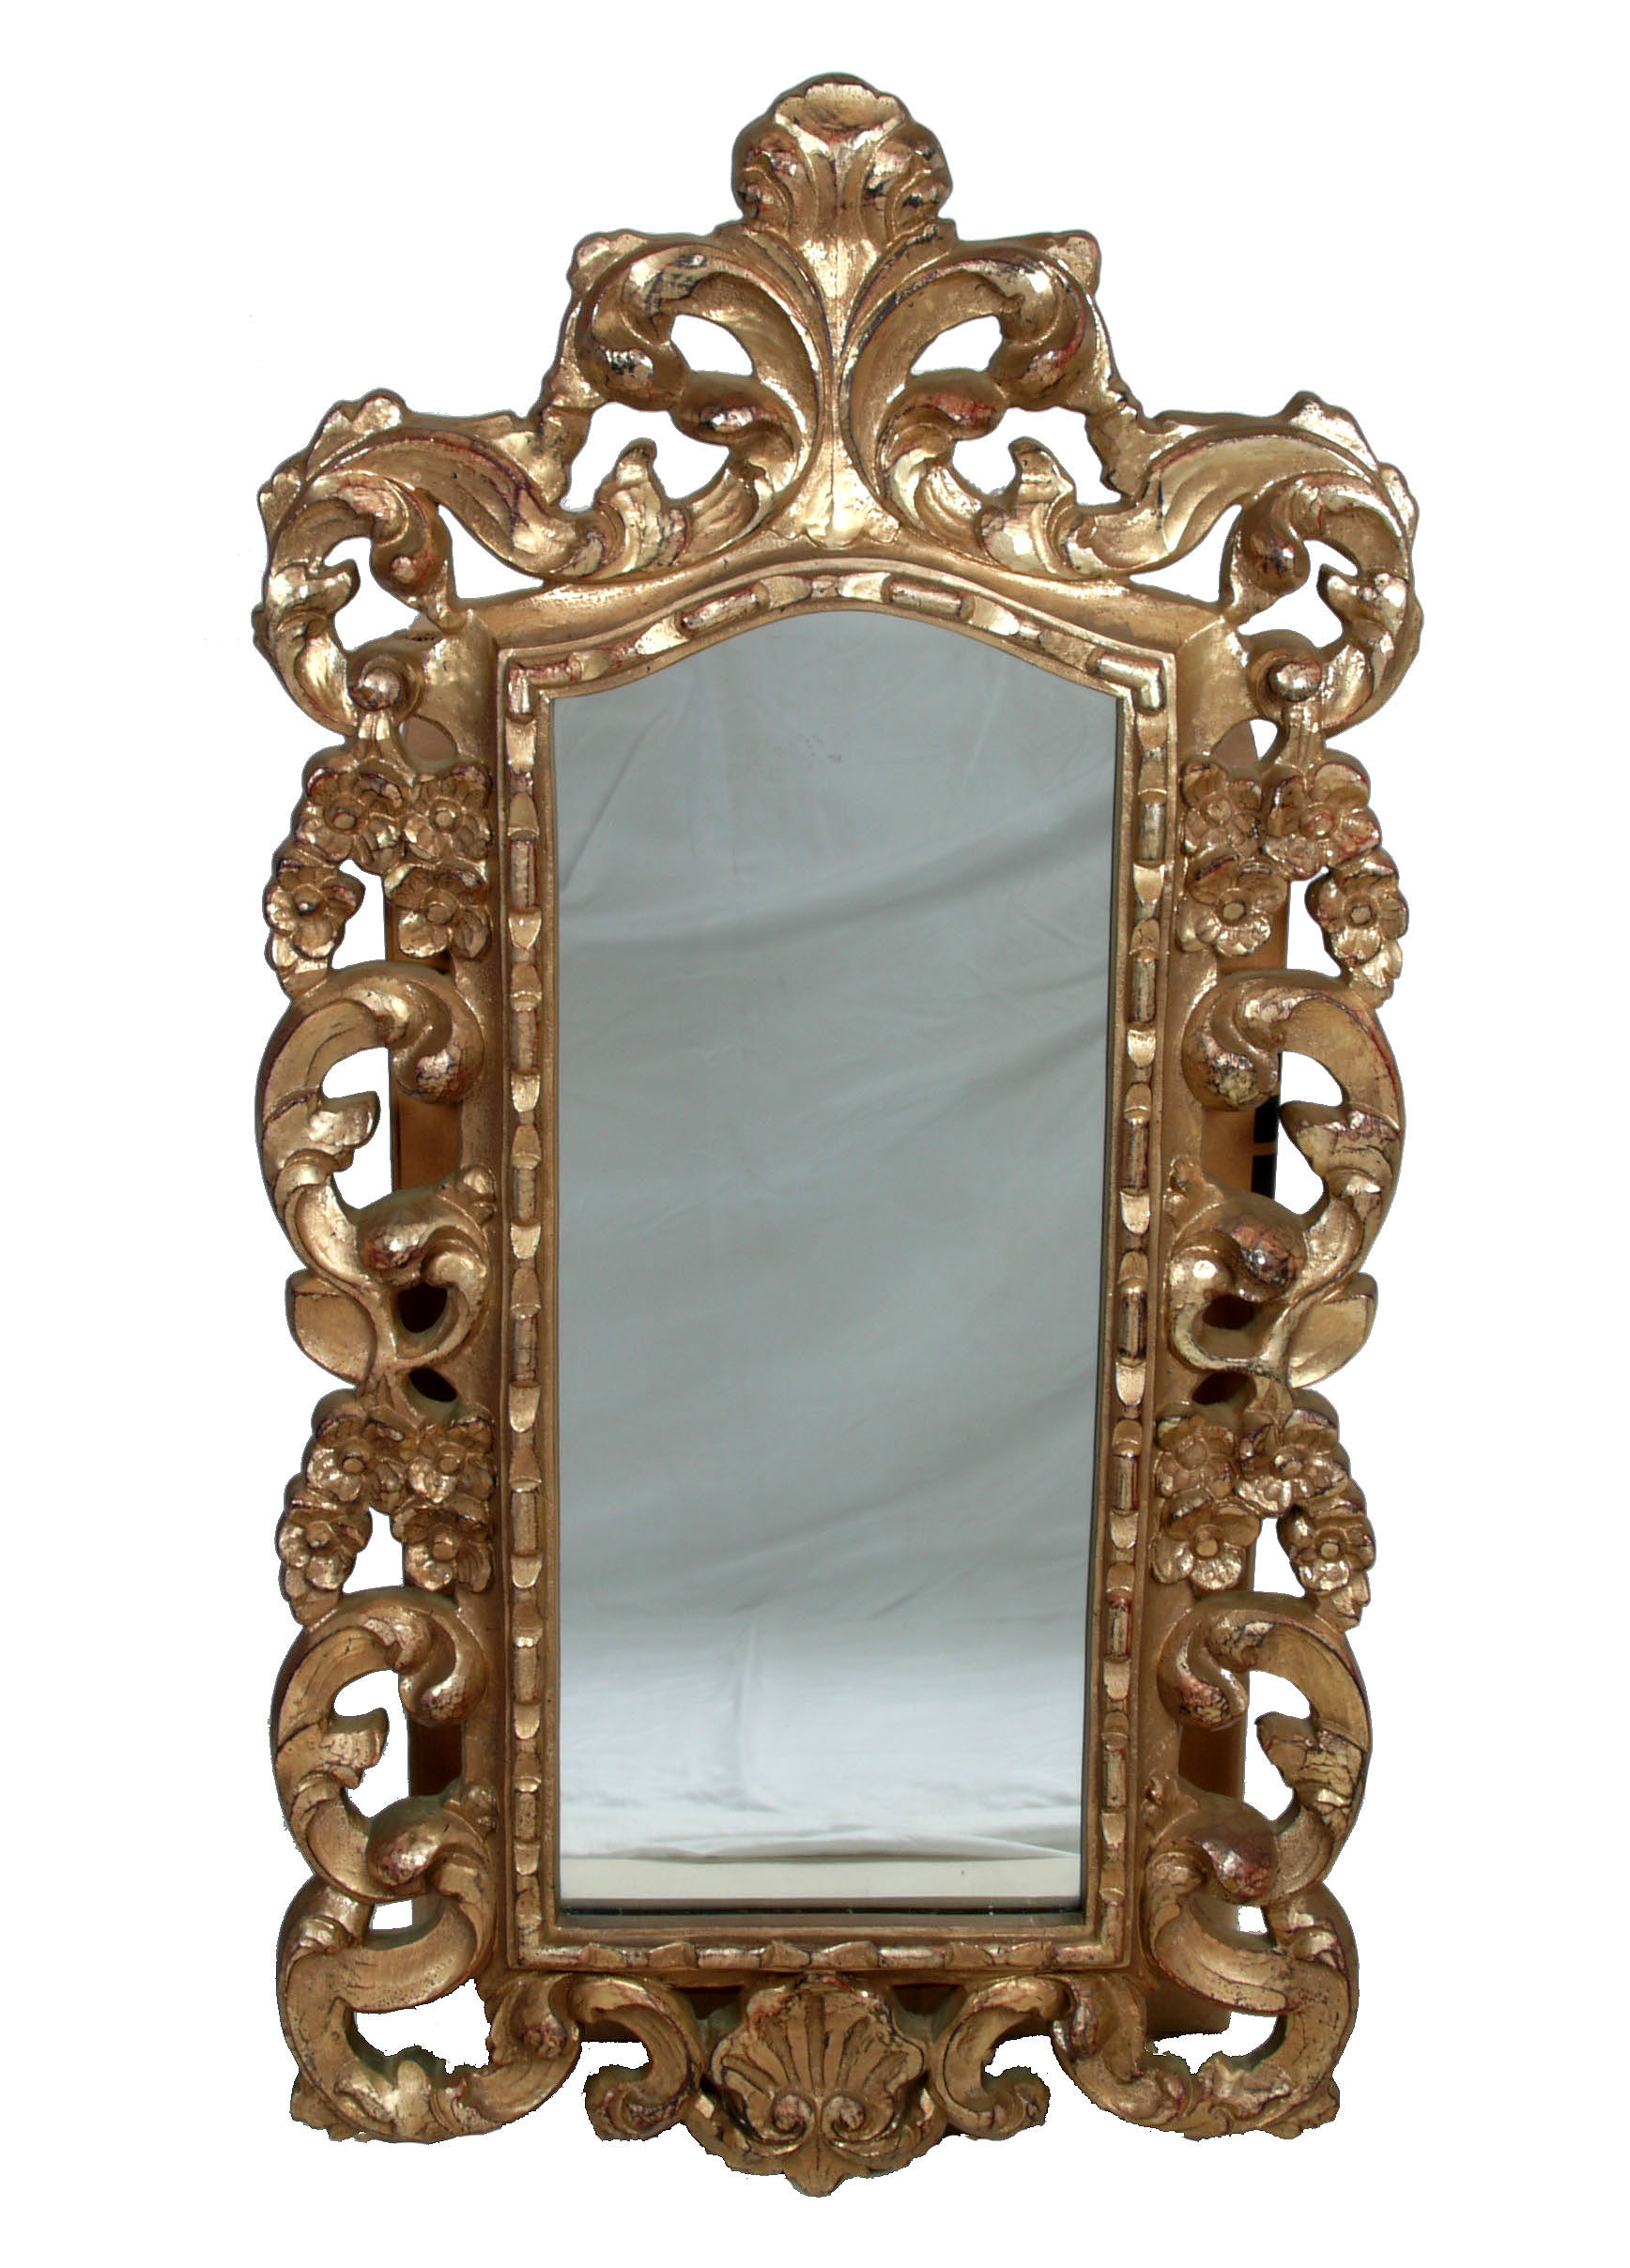 Vintage turner baroque style mirror chairish for Old style mirror